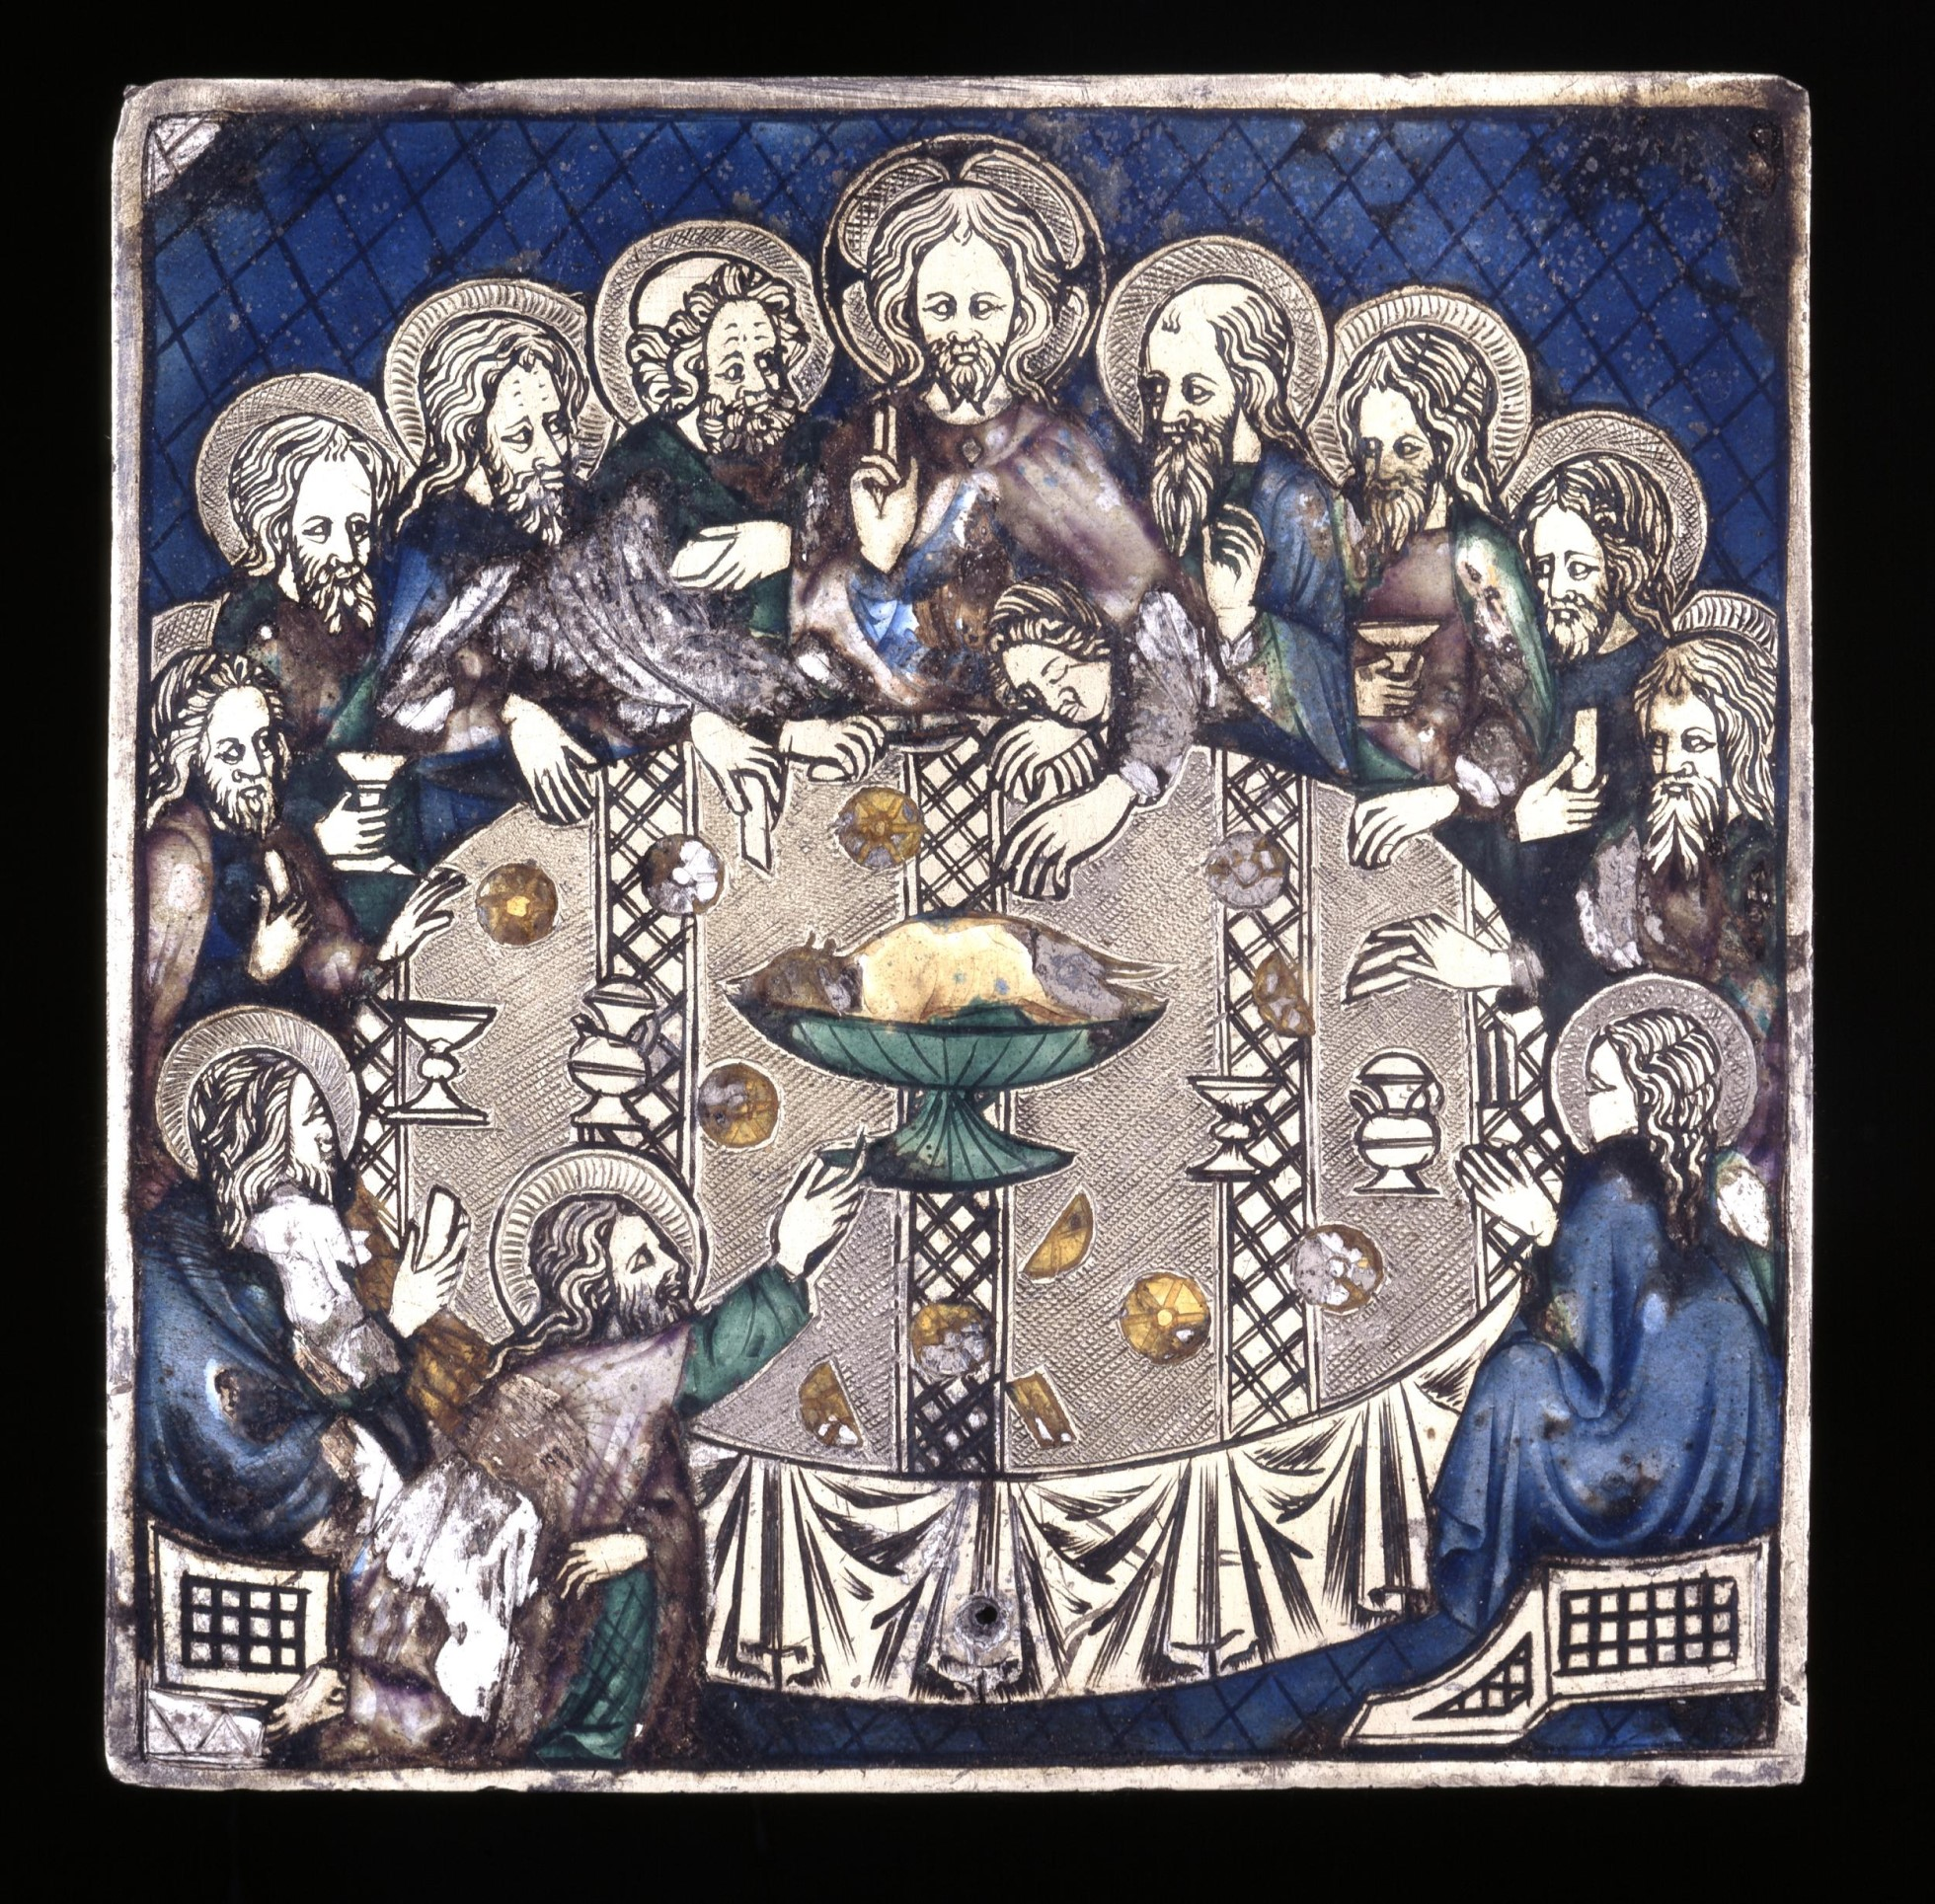 The plaque is engraved and partly enameled with translucent enamels. in blues, browns and greens. Christ and the apostles sit around a round table. In the centre of the table is a green bowl. There are various cups and vessels of different shapes on the table.